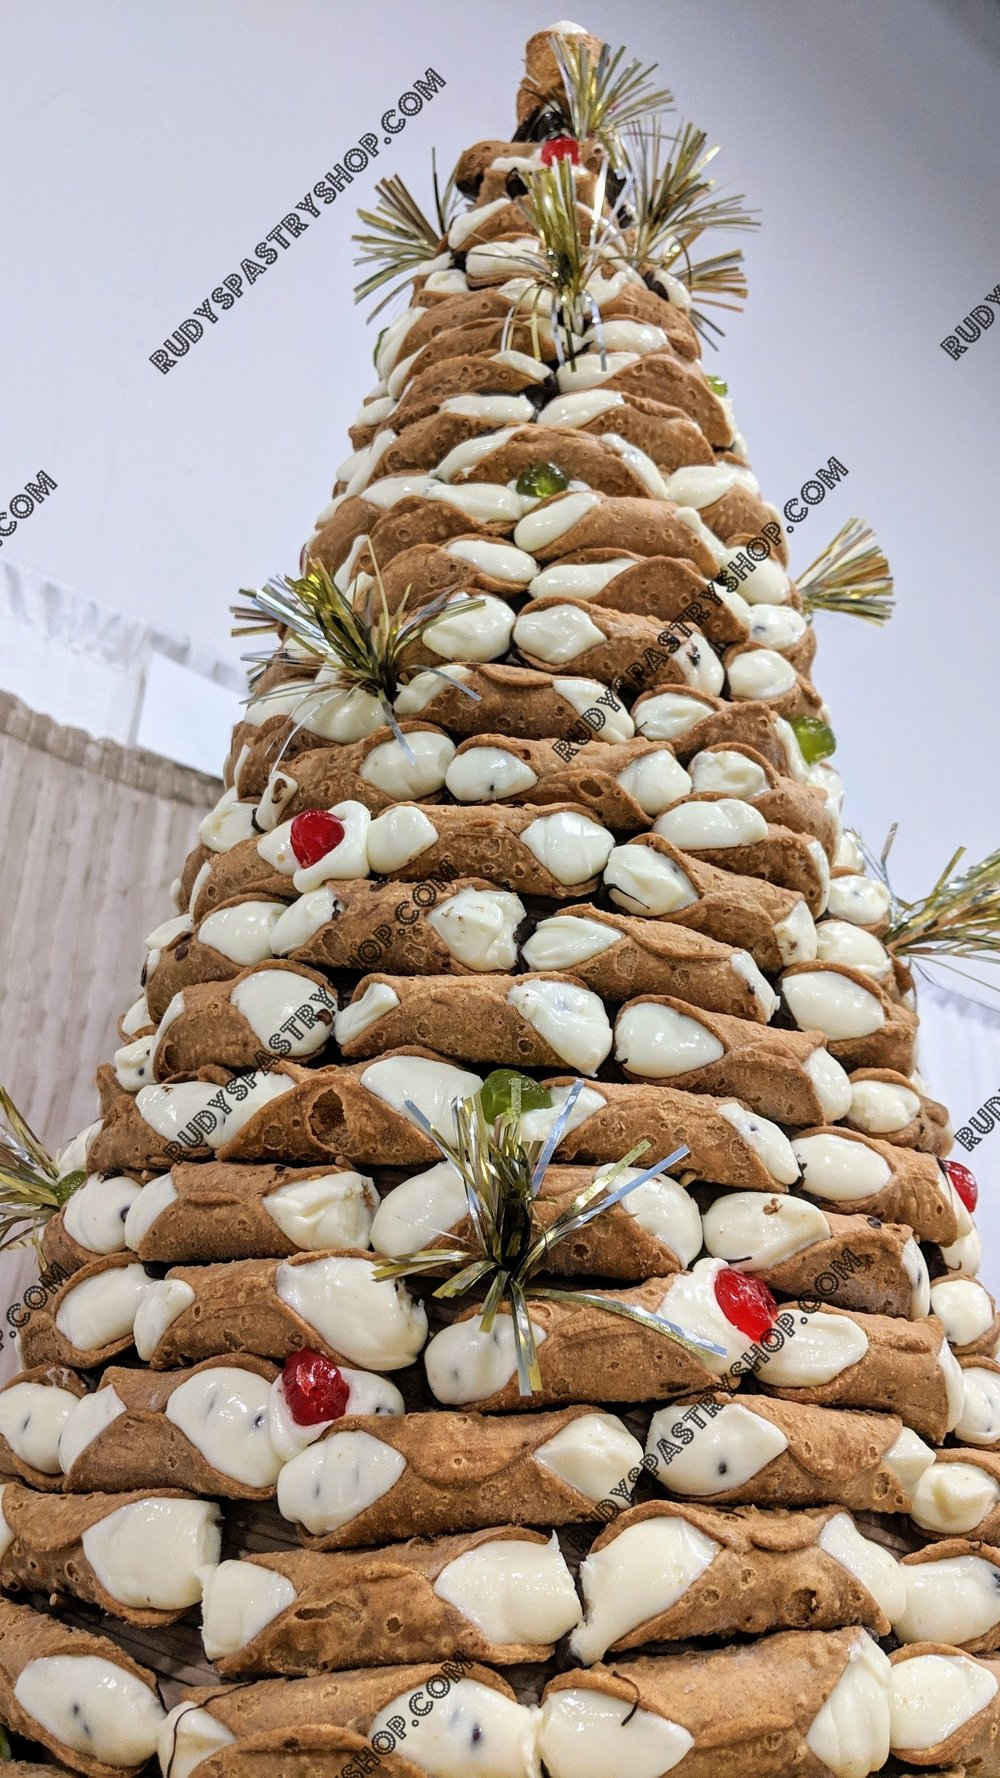 Holy Cannoli Tree - At Rudy's Pastry Shop we want to offer something special and over the top for our customers. Feast your eyes on our 4 Foot Holy Cannoli Tree cake. This delicious beauty will make a wonderful center piece or addition to any event you are hosting.This cake can be a fantastic, delicious, and fun focal point for your Wedding, Birthday party, Fundraiser, Company Event, or any Celebration.If this is a bit larger than you may need, we do offer alternate sizes in a 3, 2, or 1 Foot Cannoli Tree cake.Call to order your Cannoli Tree today! 973.743.3768